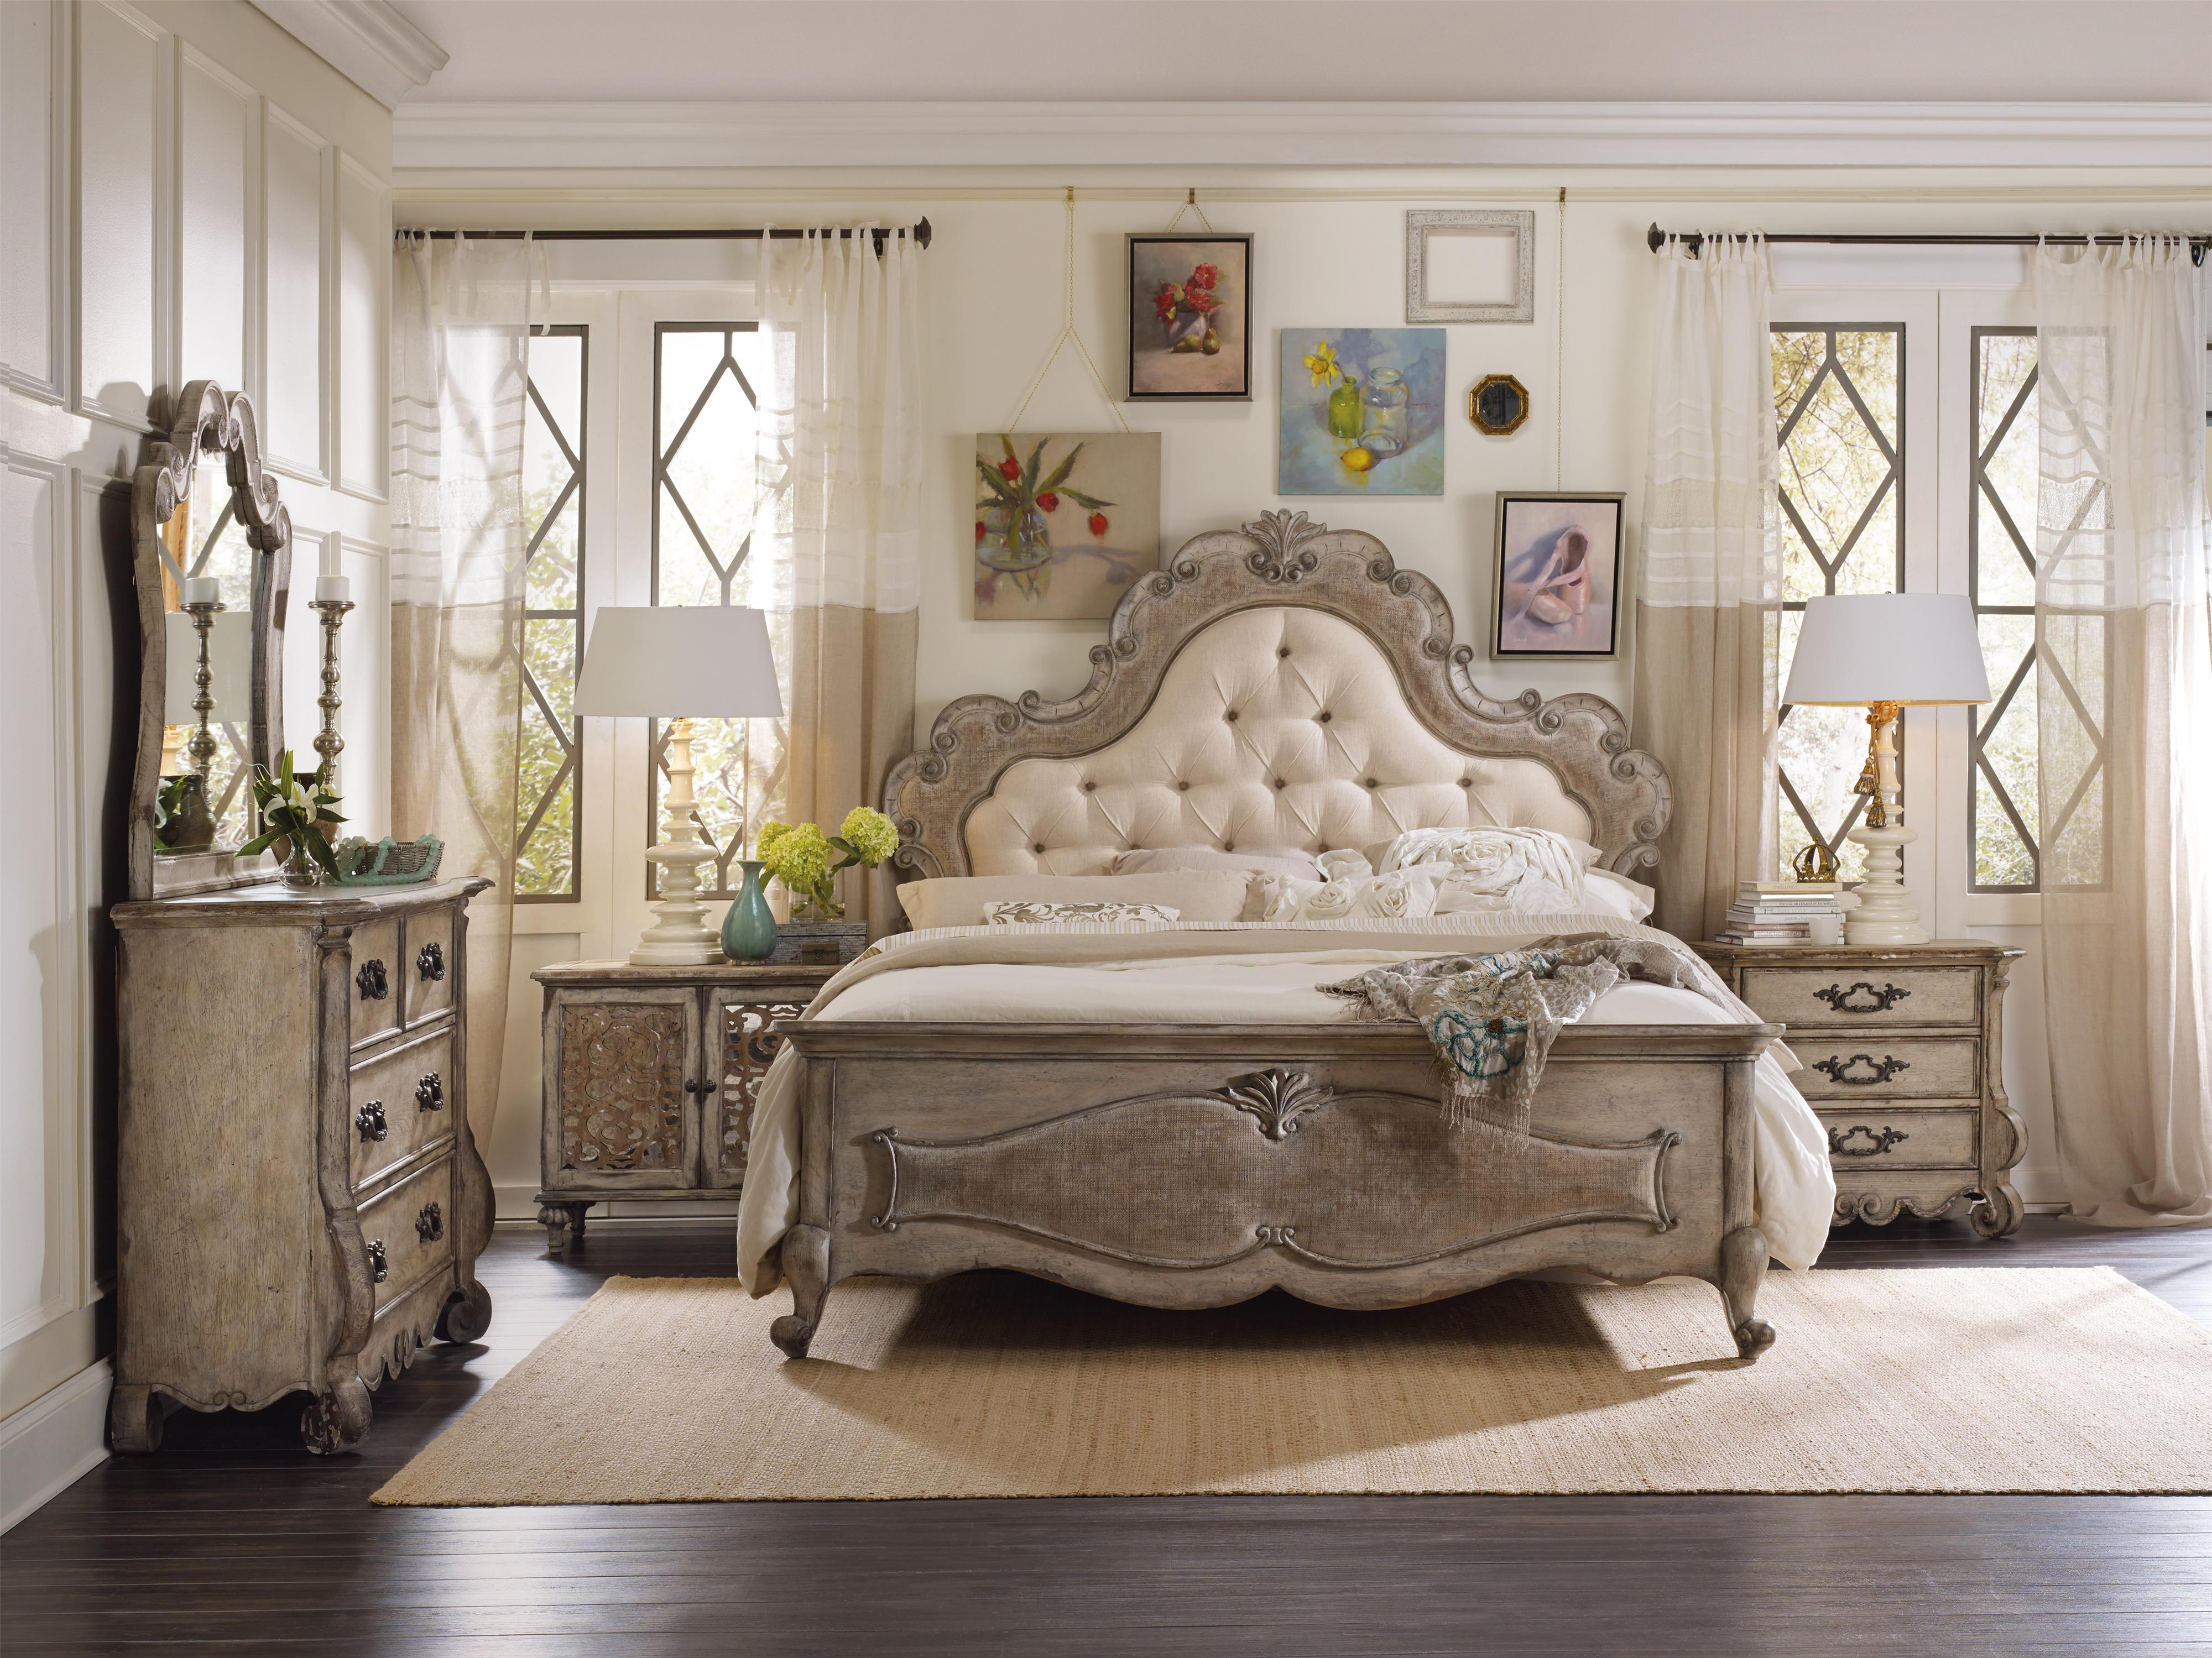 Hooker Furniture Chatelet King Bedroom Group - Item Number: 5350 K Bedroom Group 3